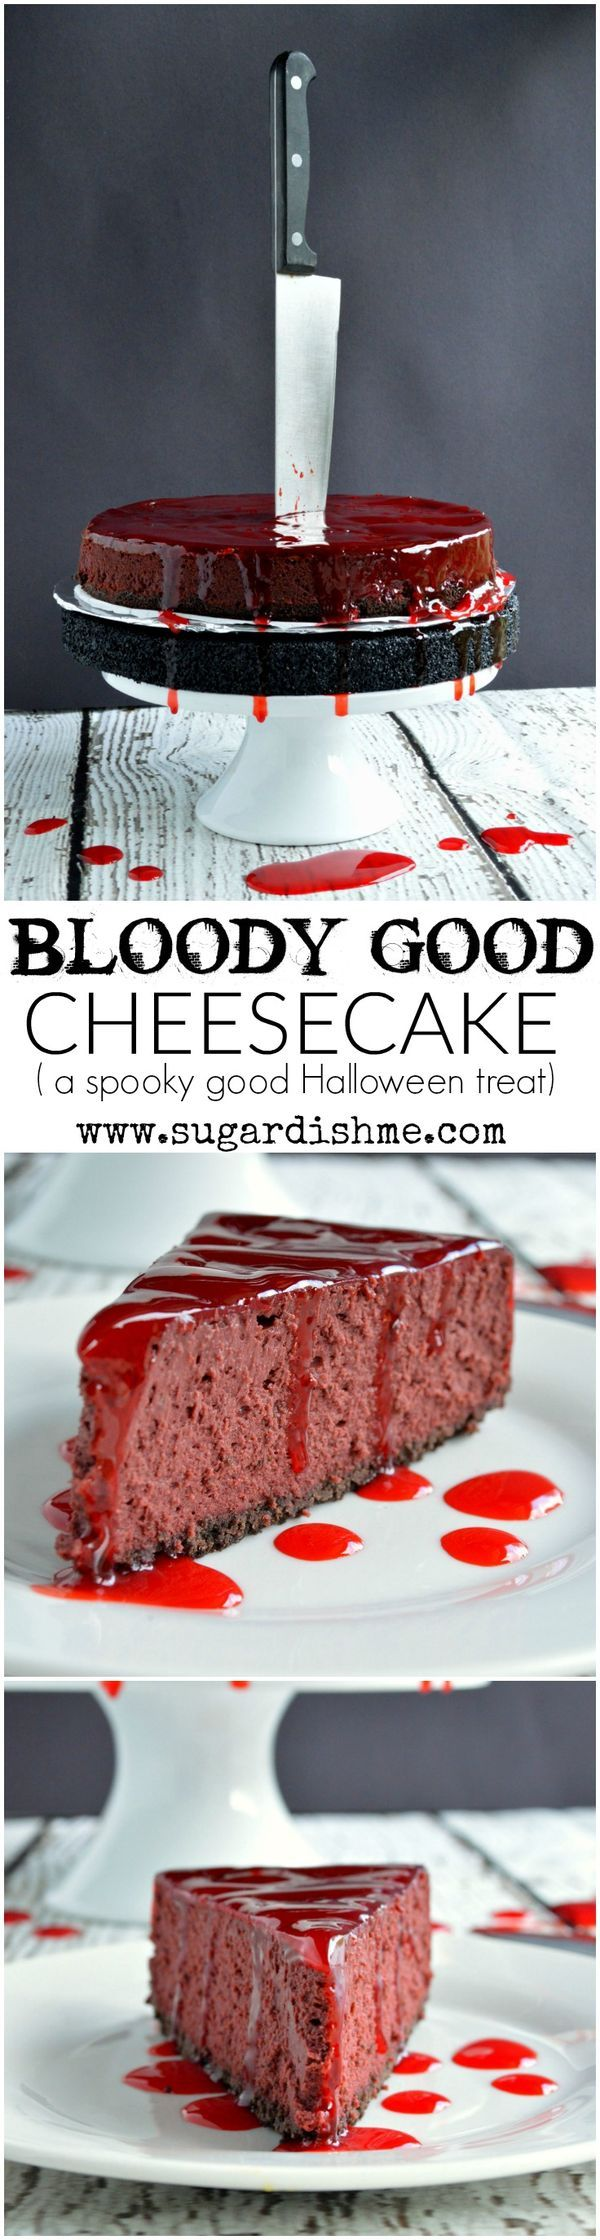 This Bloody Good Cheesecake Recipe is the spookiest Halloween treat that is sure to be the scary centerpiece of your party!